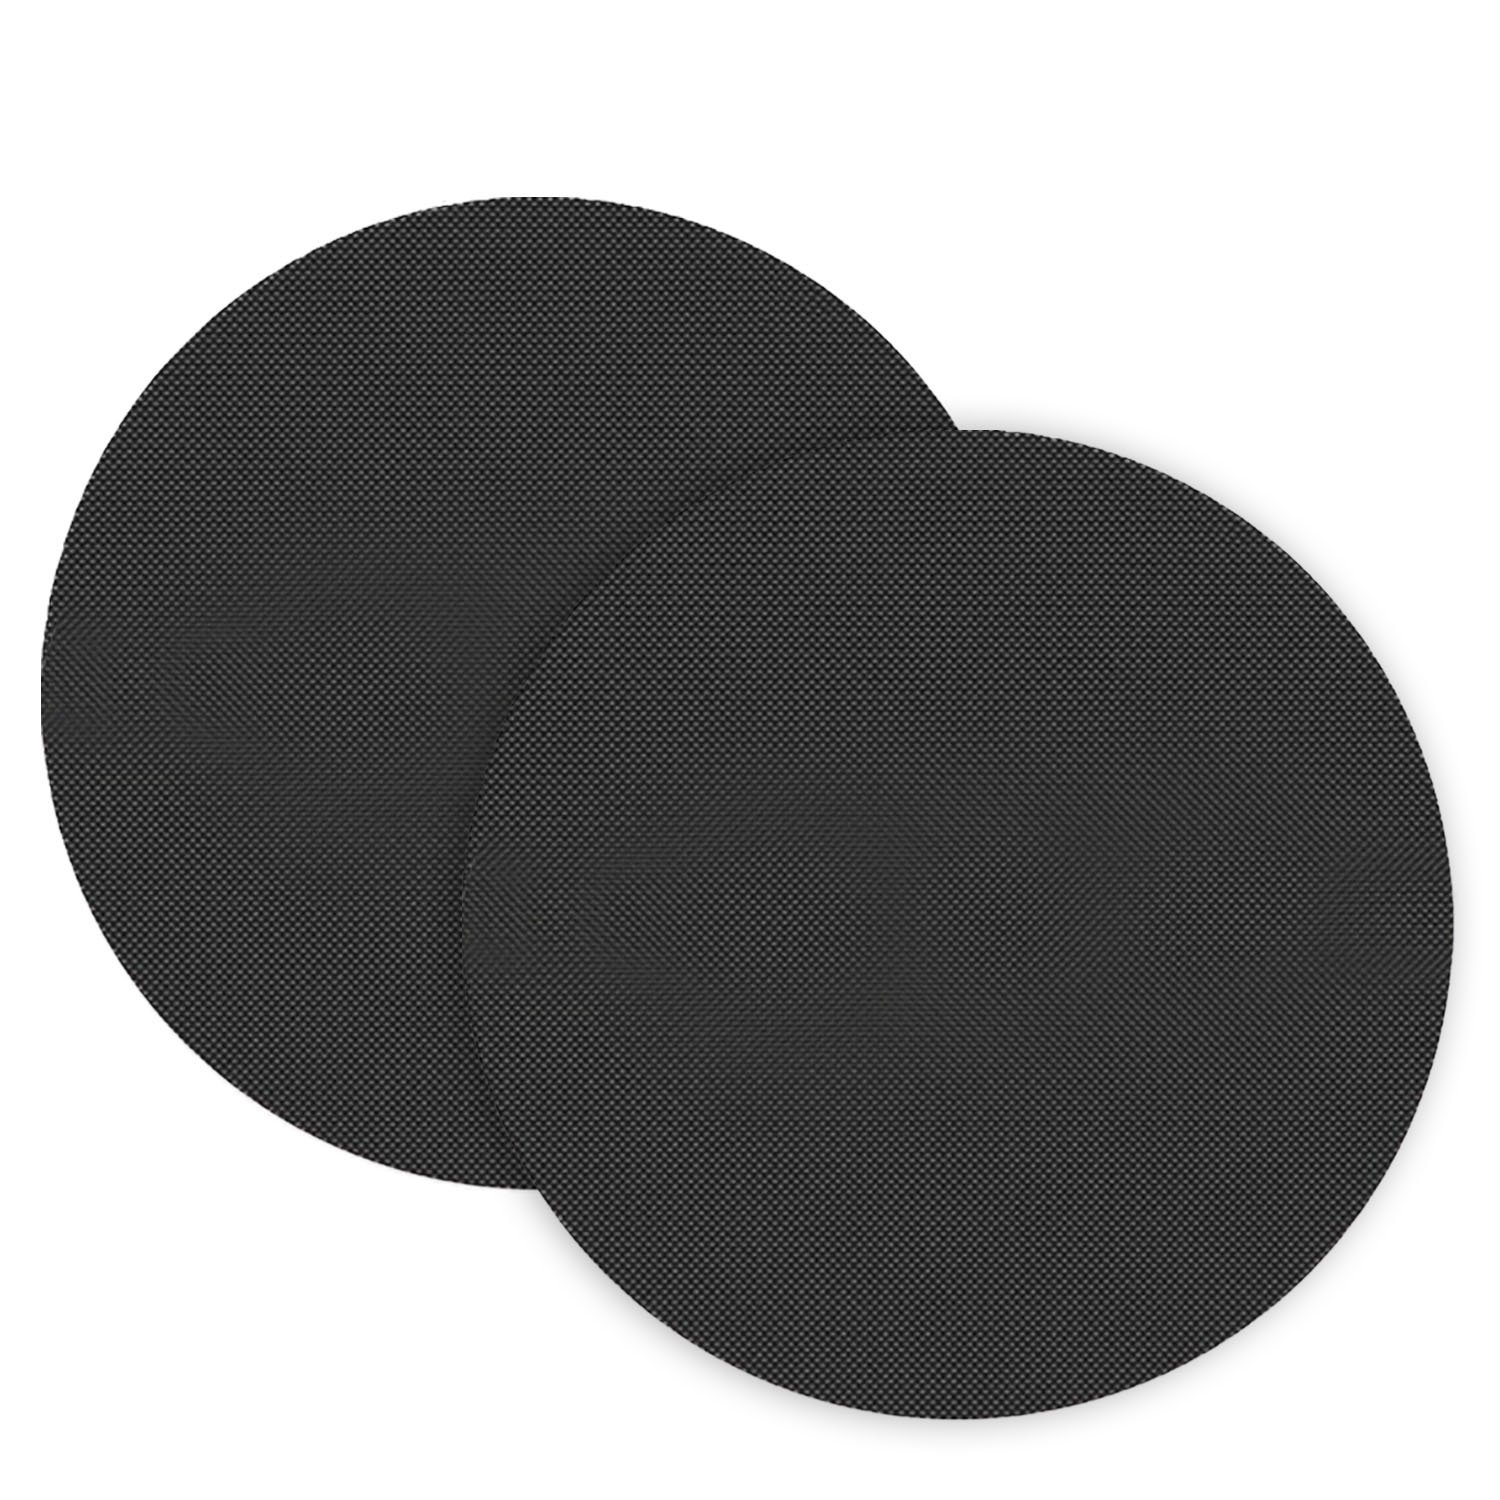 Grill Mat, 2 PCS Reusable Round Non Stick Barbecue Mat BBQ Pad Sheet Baking Pan Fry Liner for Charcoal Grills Electric Ovens Microwave Ovens Migavan